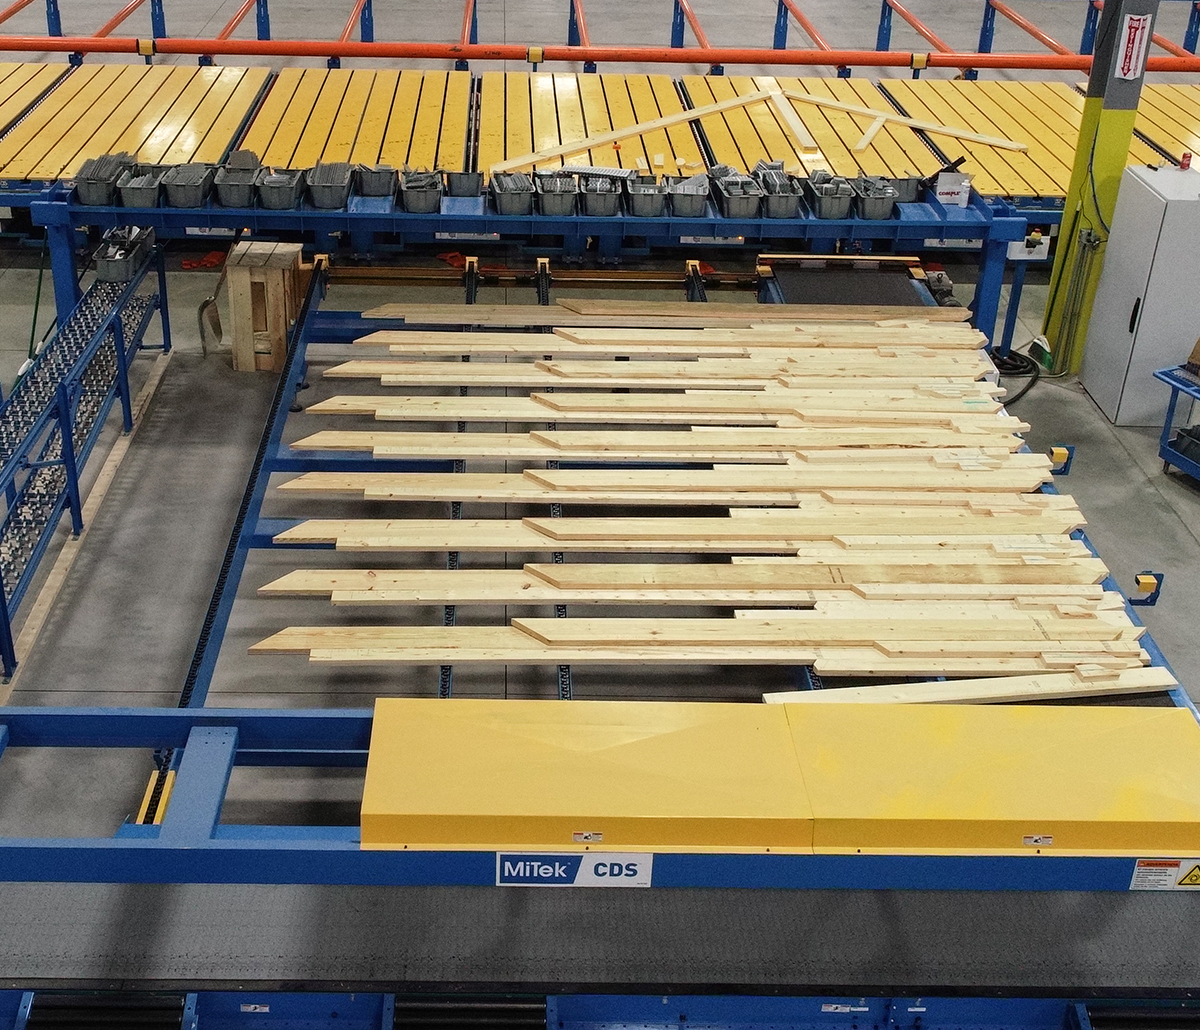 MiTek Component Delivery System Automated Solutions - Component delivery system in use moving lumber in warehouse